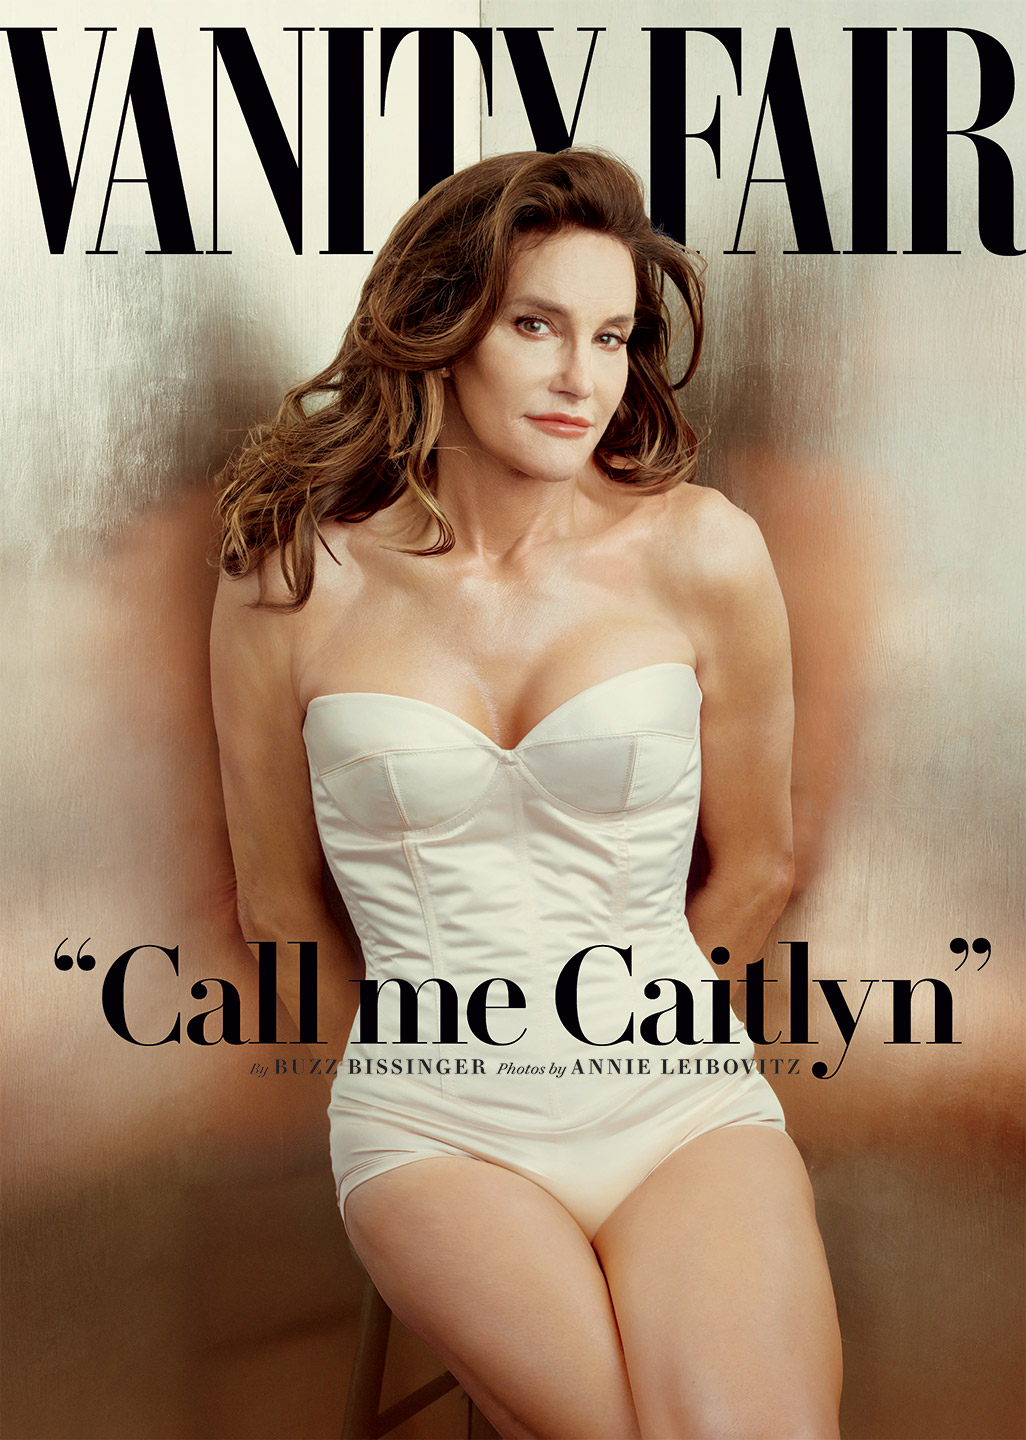 Caitlyn Jenner cover